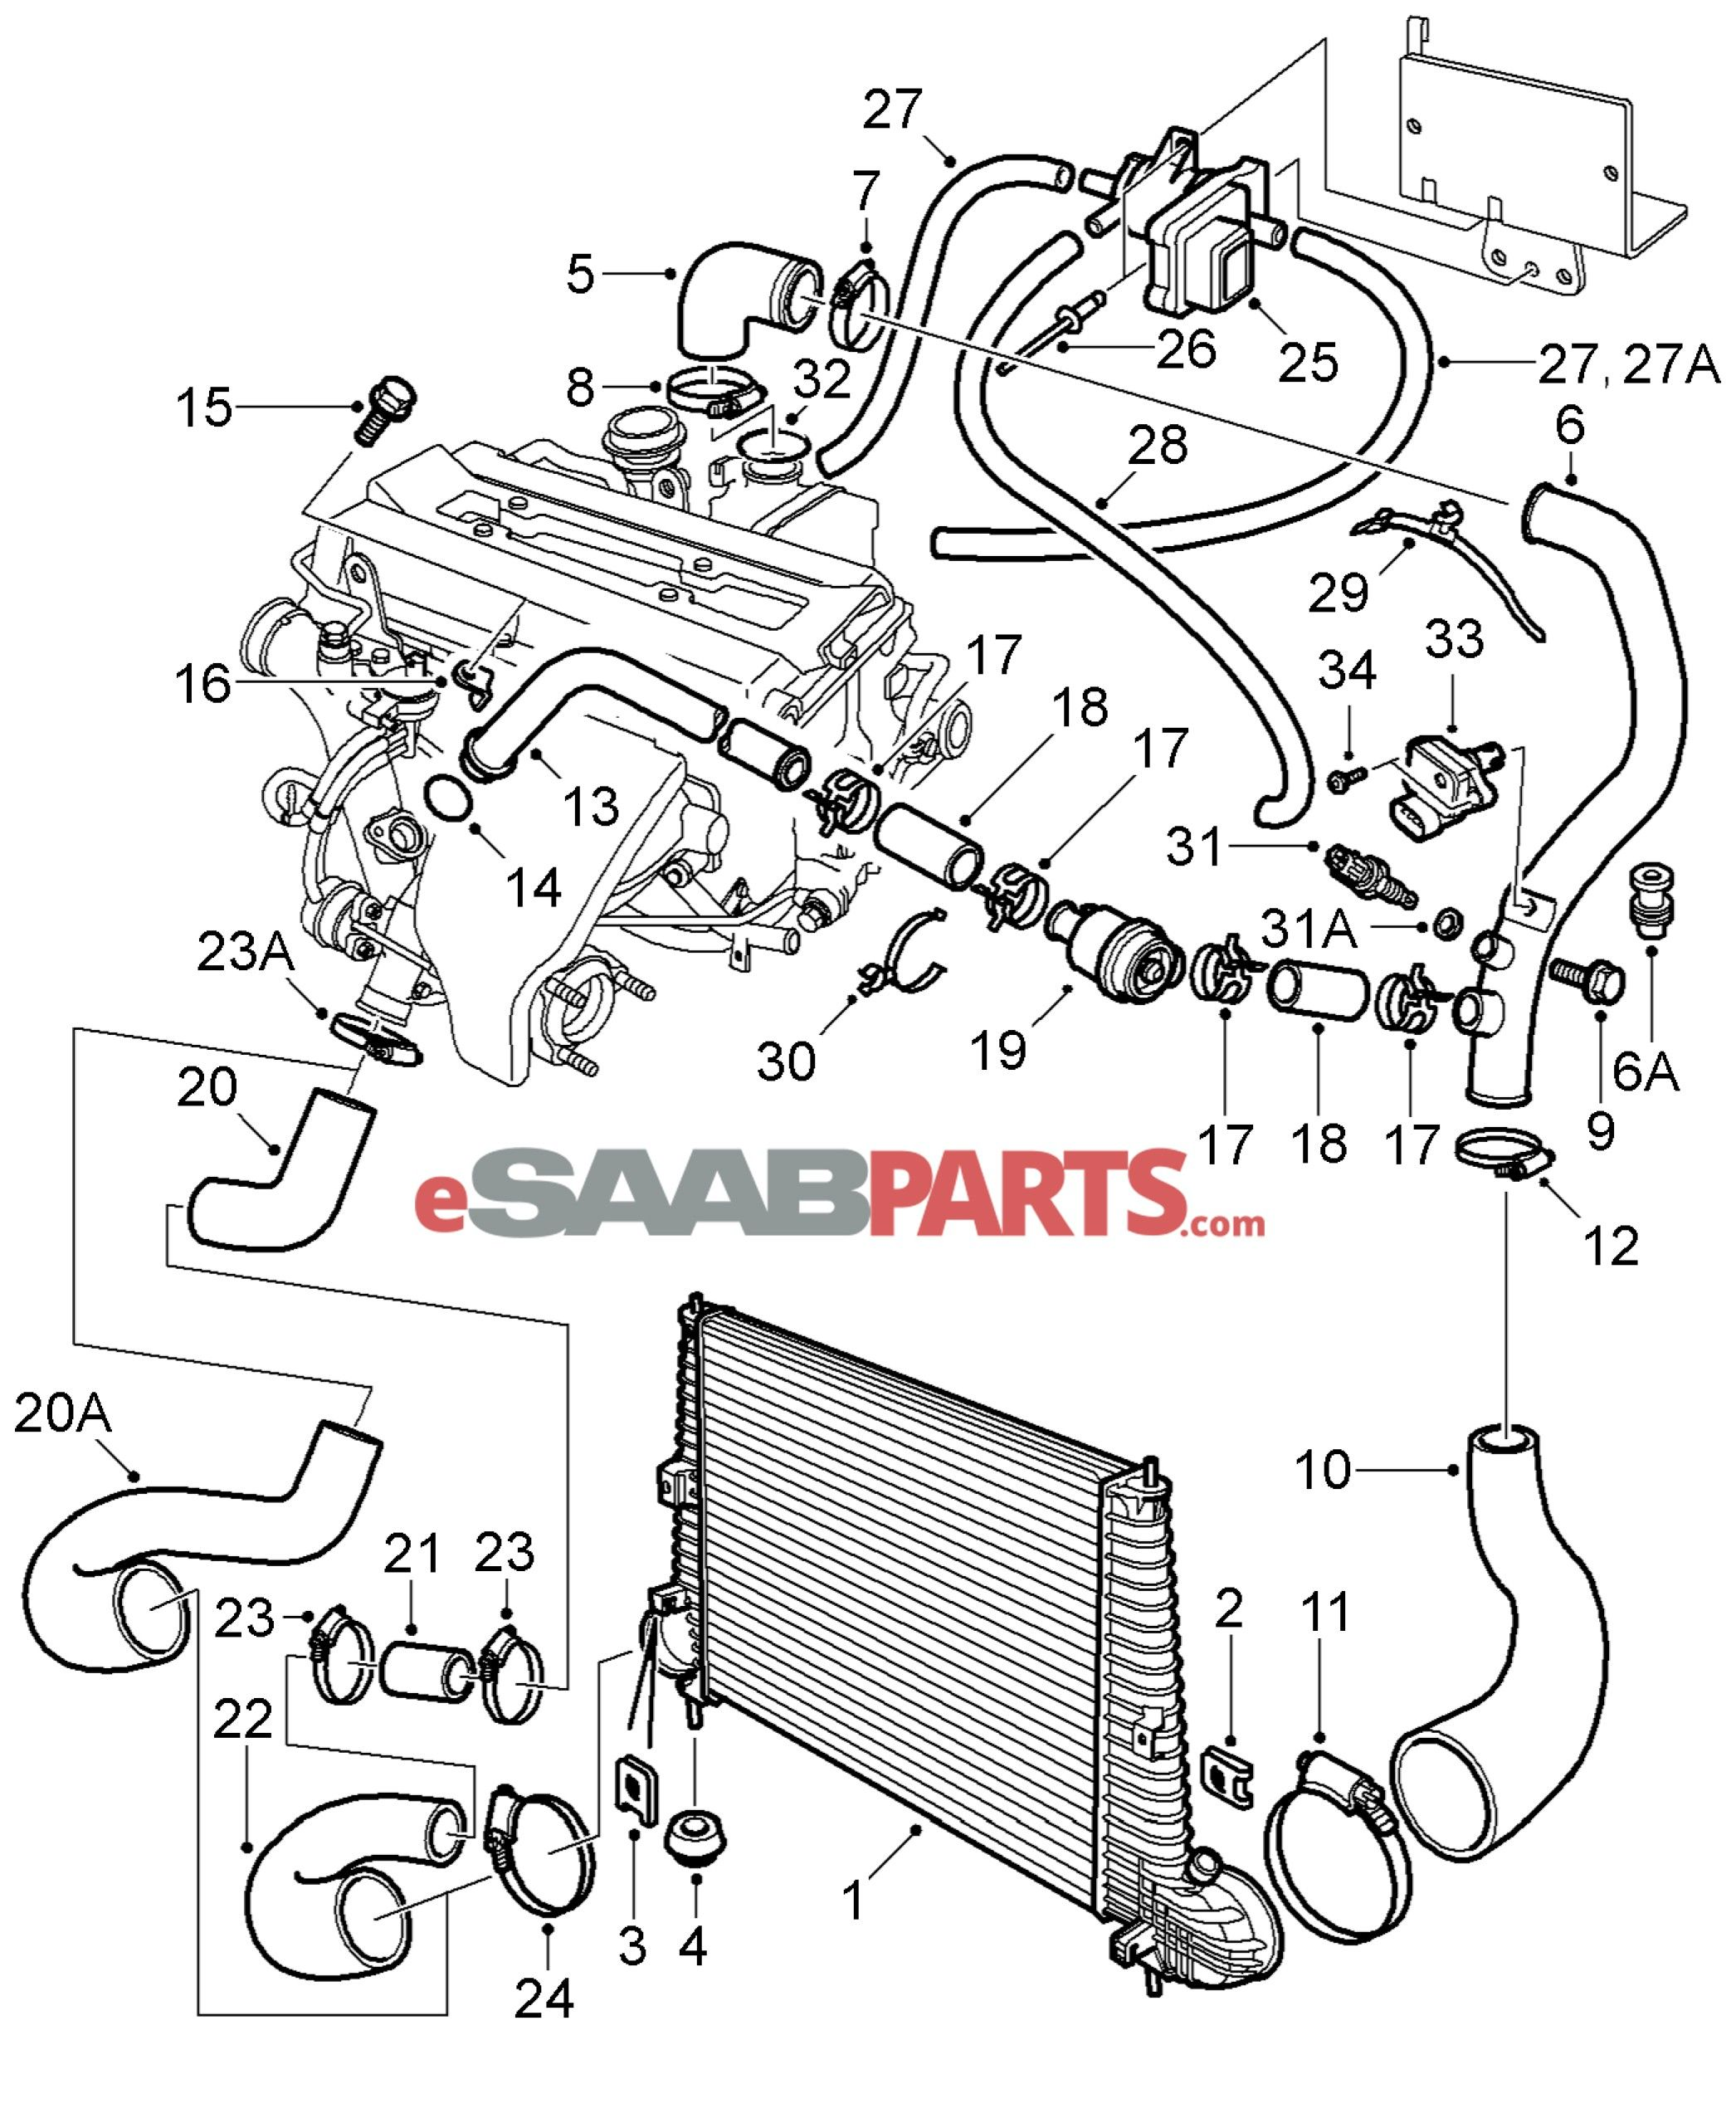 hight resolution of 2005 saab 9 5 engine part diagram basic guide wiring diagram u2022 rh hydrasystemsllc com 99 saab 9 5 specs 99 saab 9 5 specs